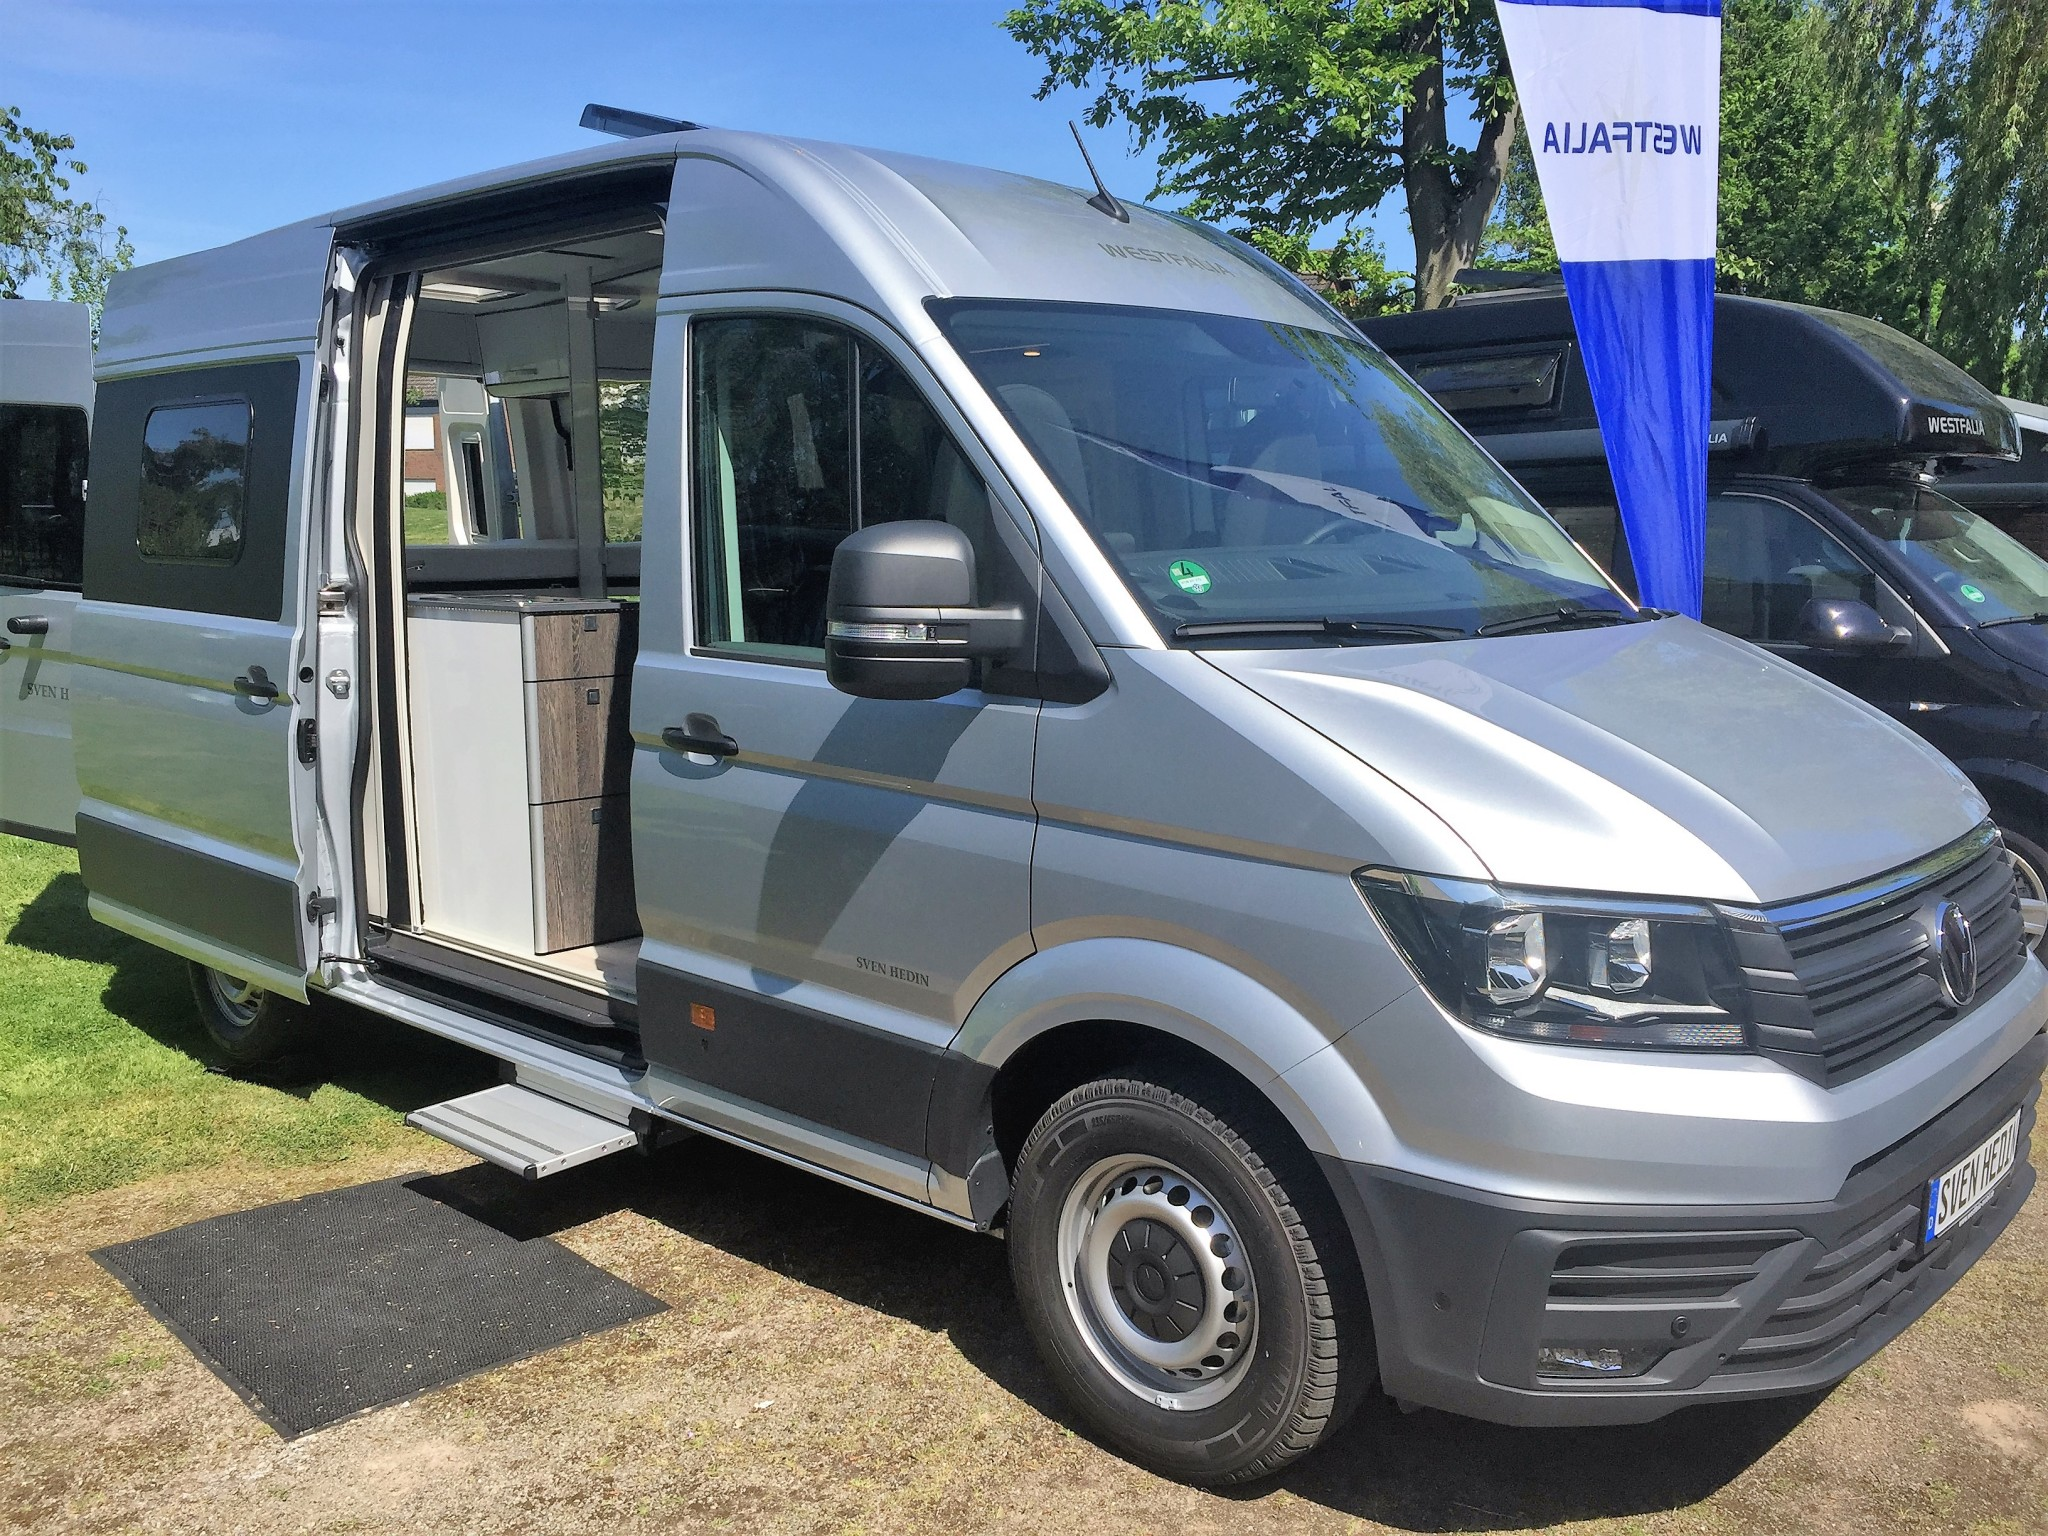 NEW MODEL FOR 2018 Westfalia Sven Hedin Motorhome VW Crafter DSG